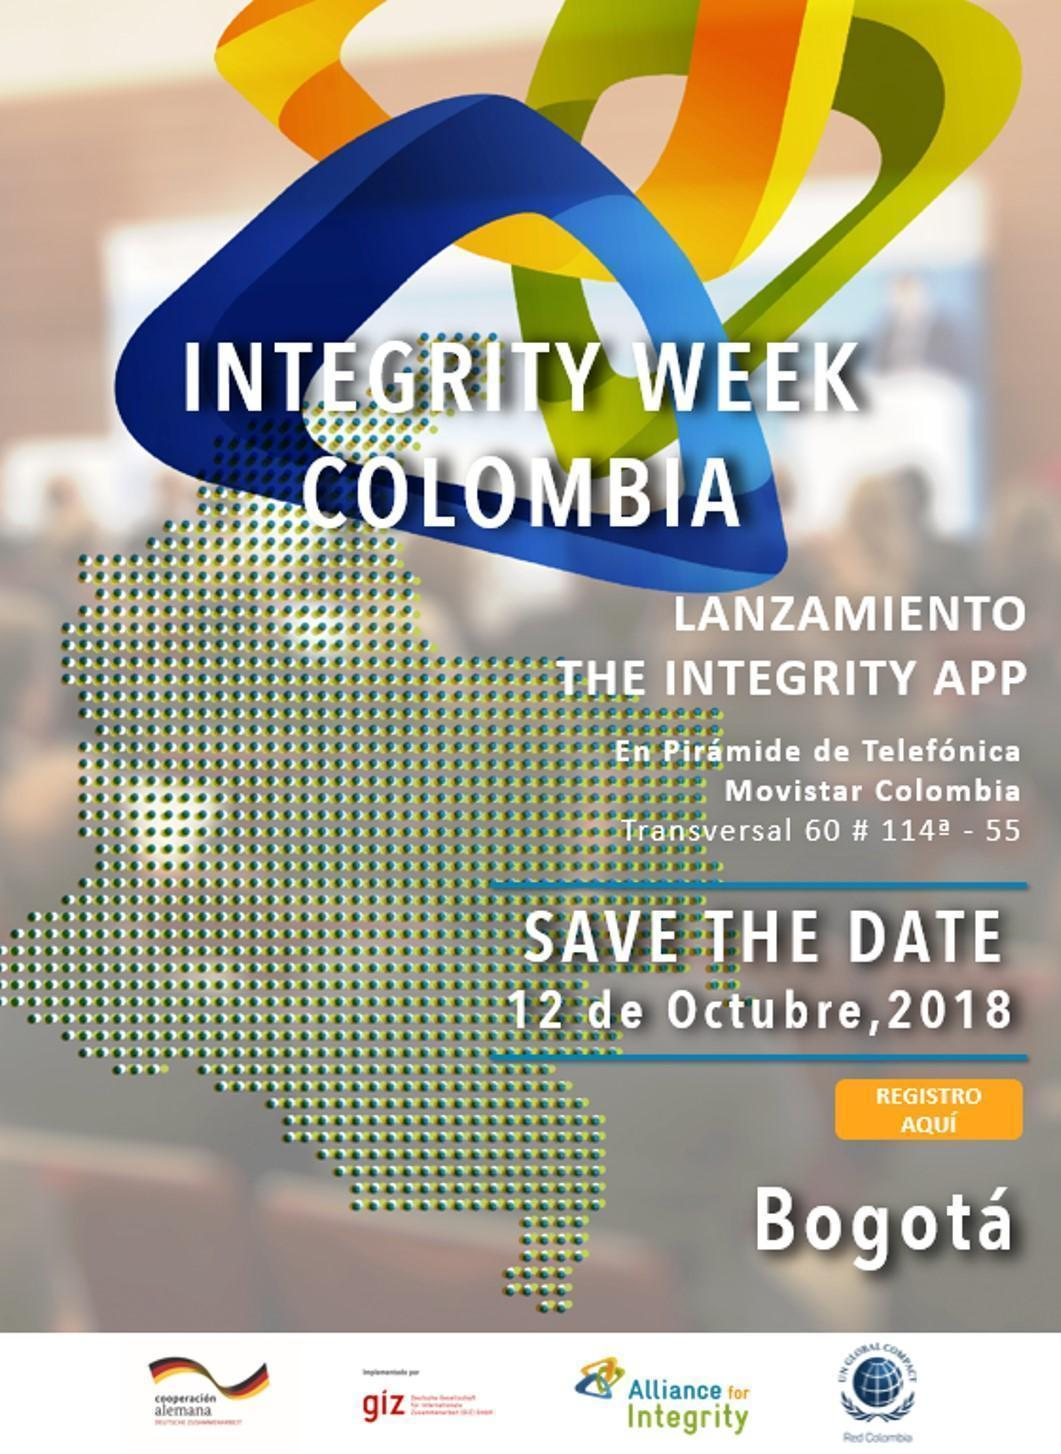 Lanzamiento de The Integrity App Colombia